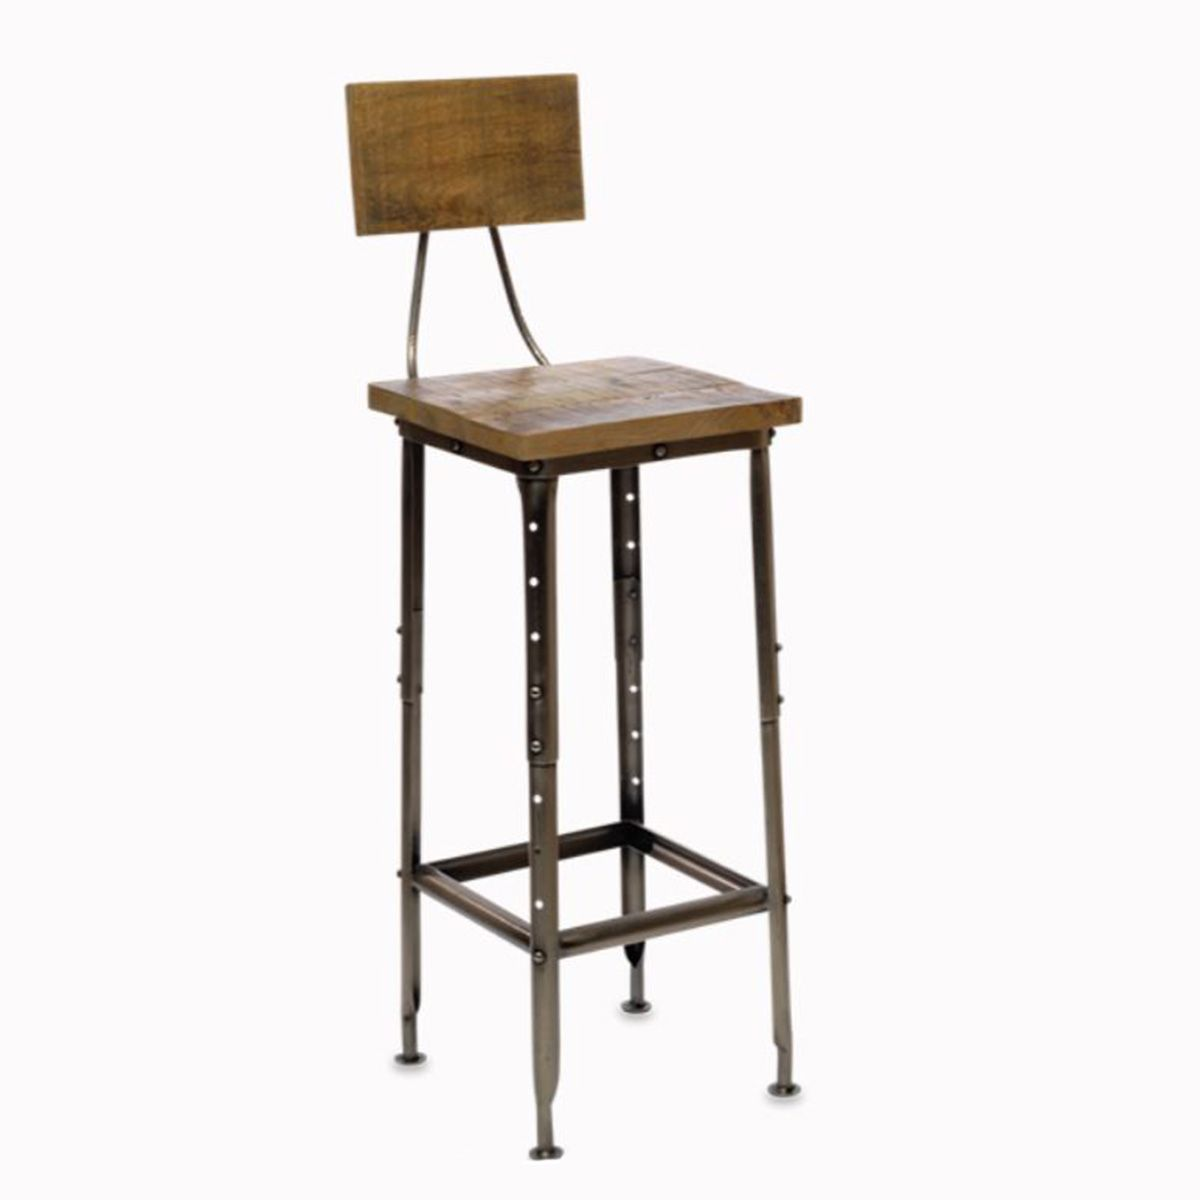 Tabouret de bar en manguier et nickel Tuni Nkuku